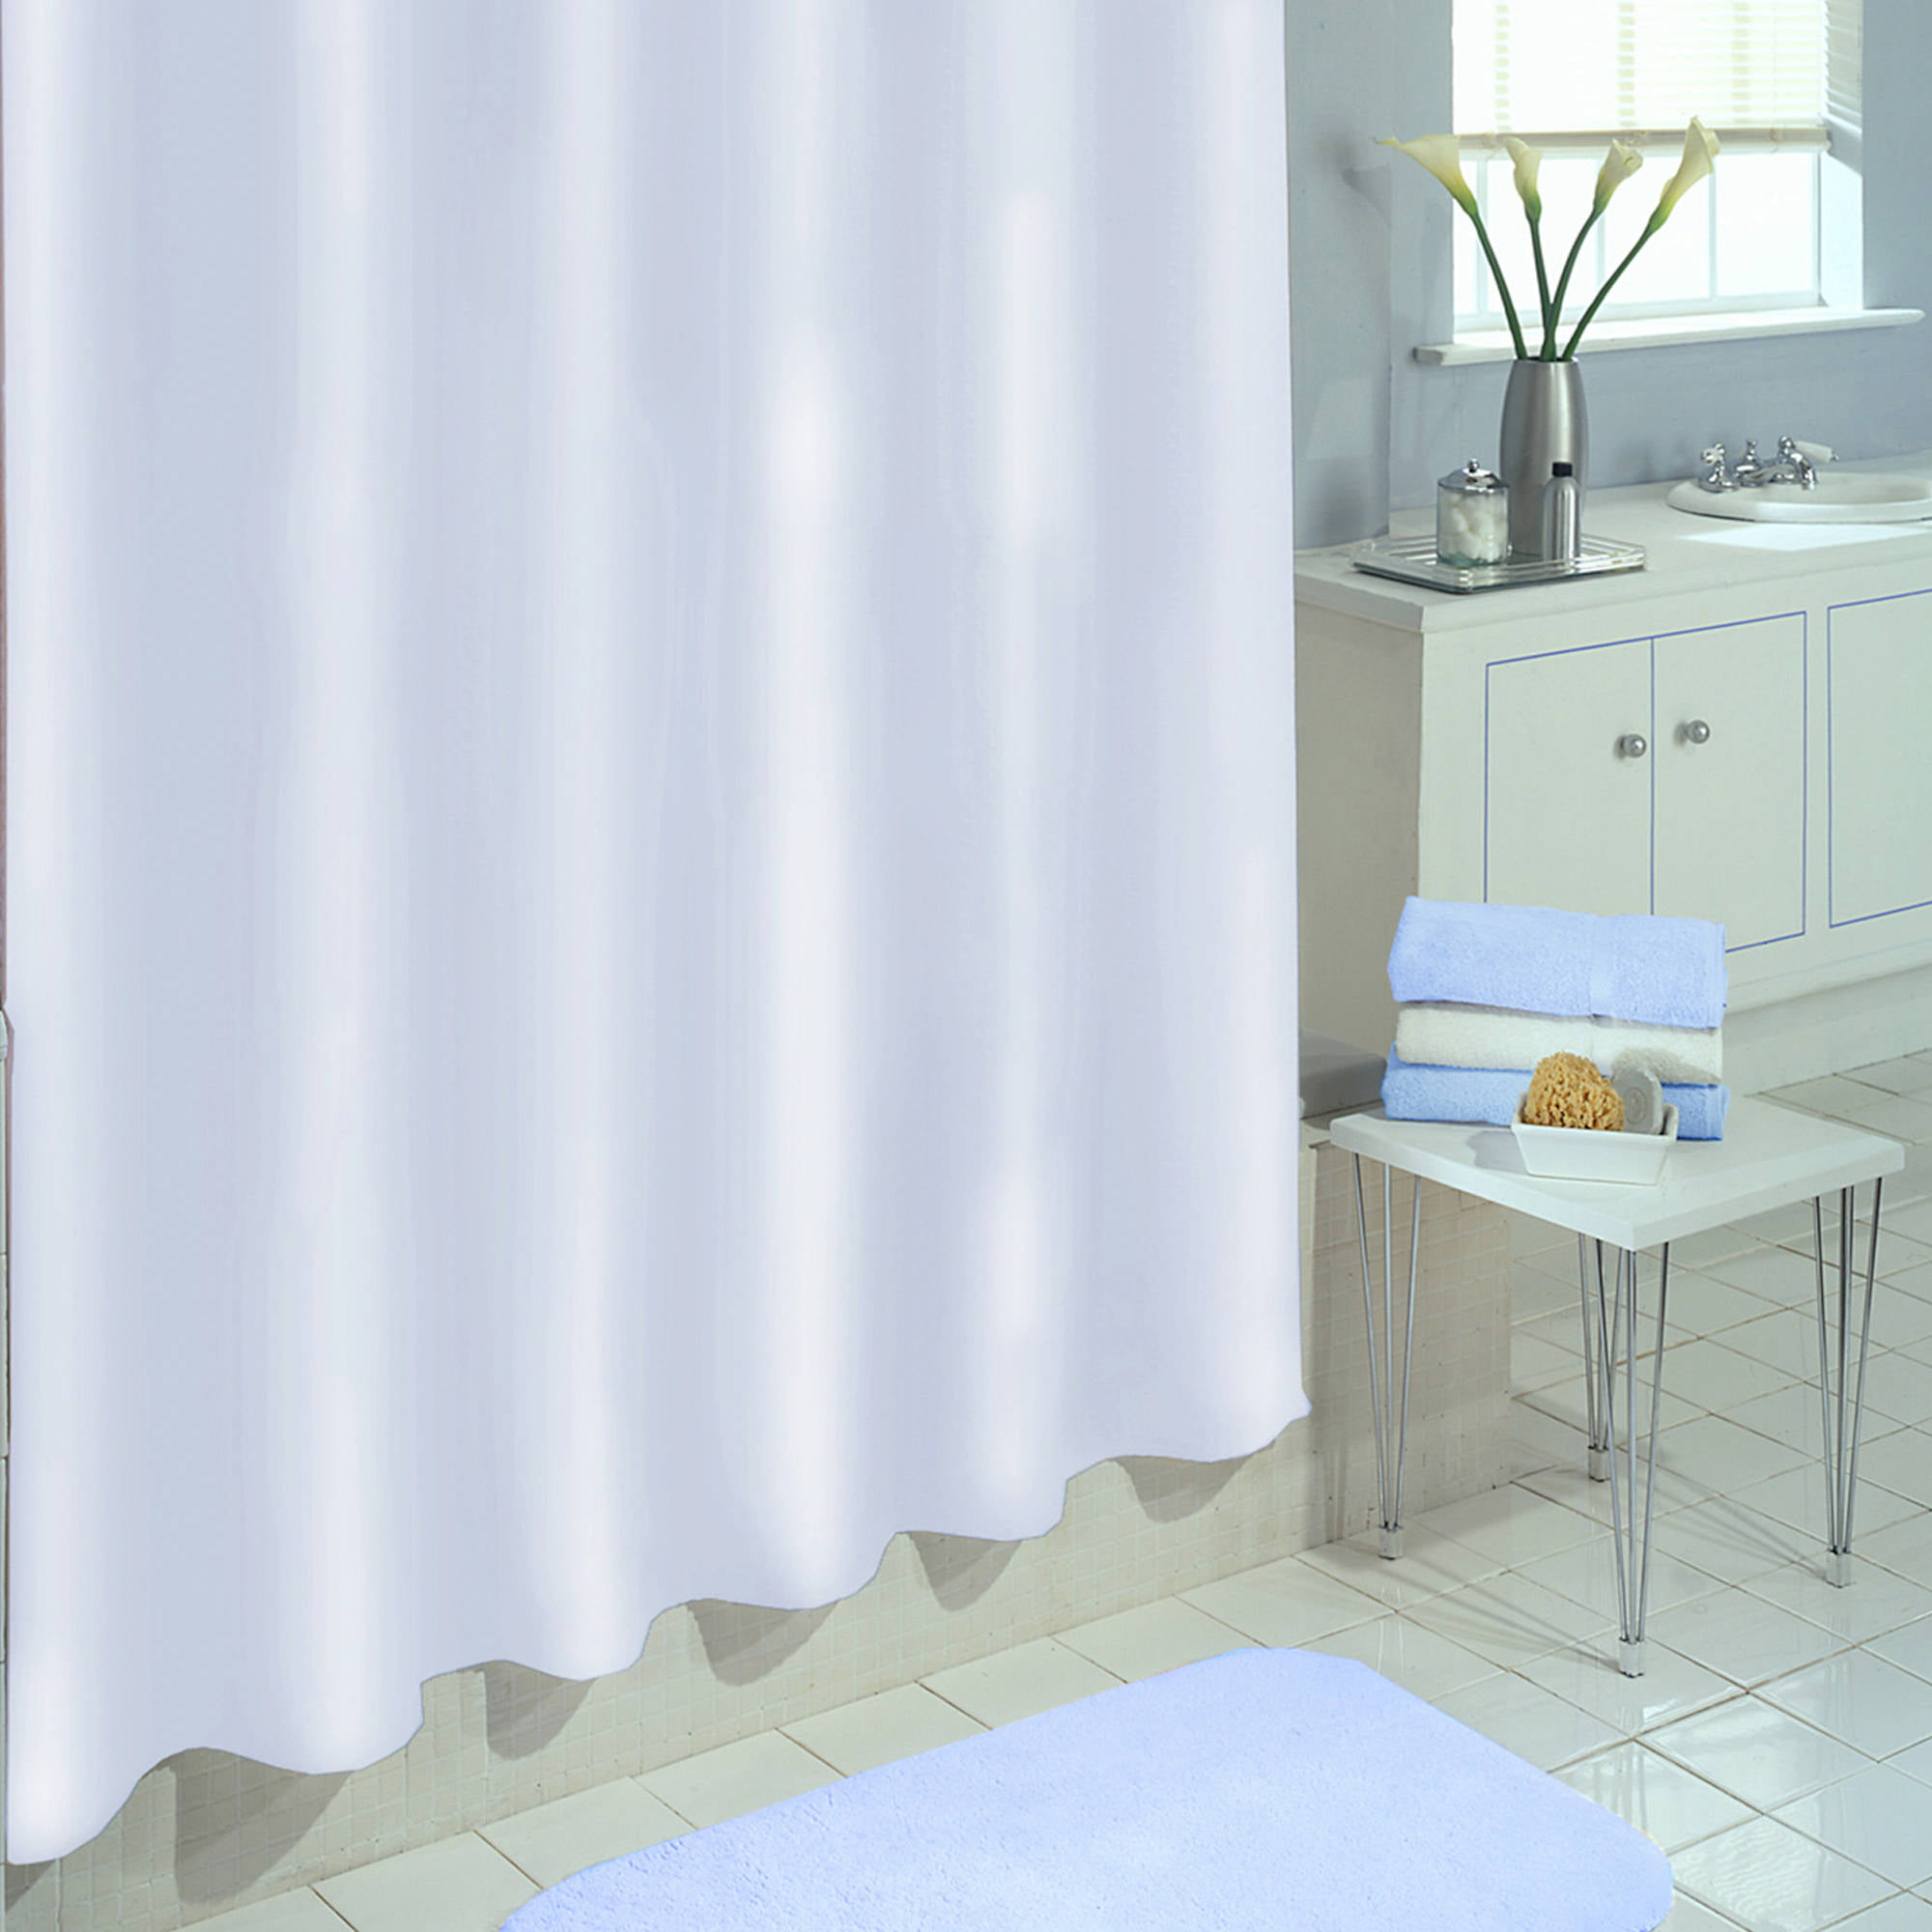 Excell Eco Soft PEVA Shower Curtain Liner - Walmart.com